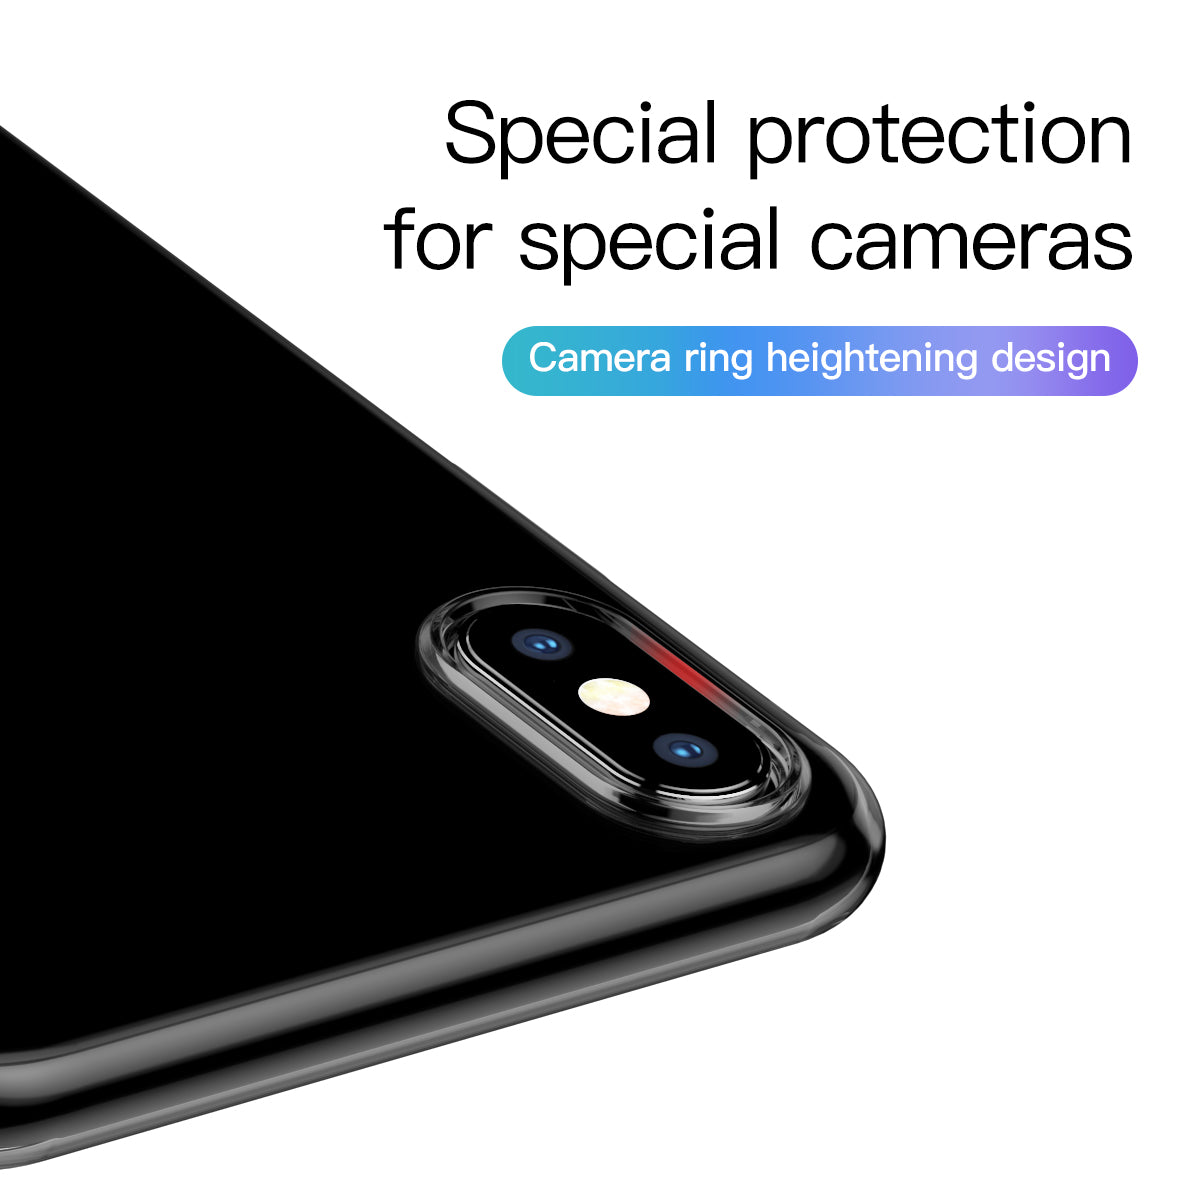 iPhone-XS-Baseus-Simple-Series-Transparent-Black-Dust-Free-Plug-Camera-Protection_S07WGFP5N77E.jpg